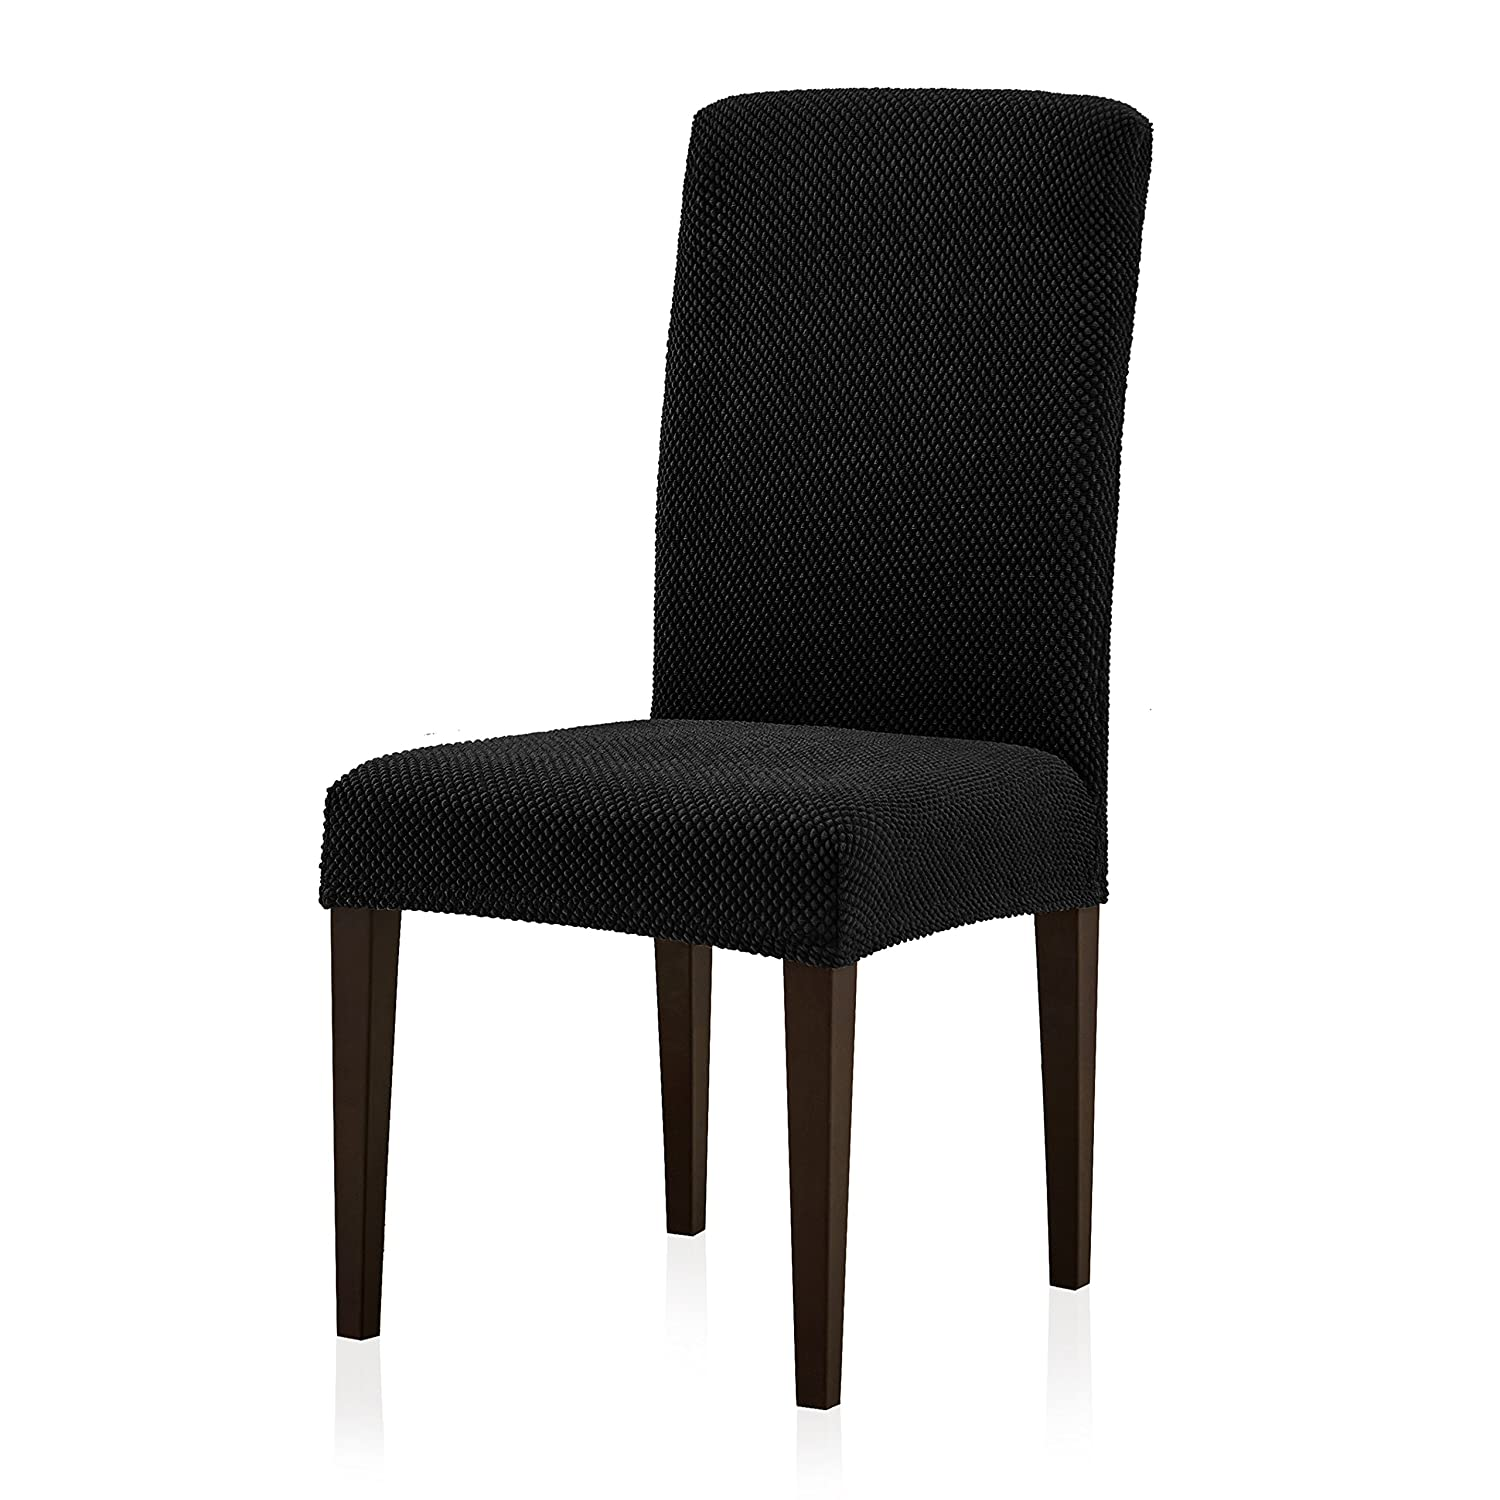 Subrtex Jacquard Dining Room Chair Slipcovers Sets Stretch Furniture Protector Covers for Armchair Removable Washable Elastic Parsons Seat Case for Restaurant Hotel Ceremony (4, Black)